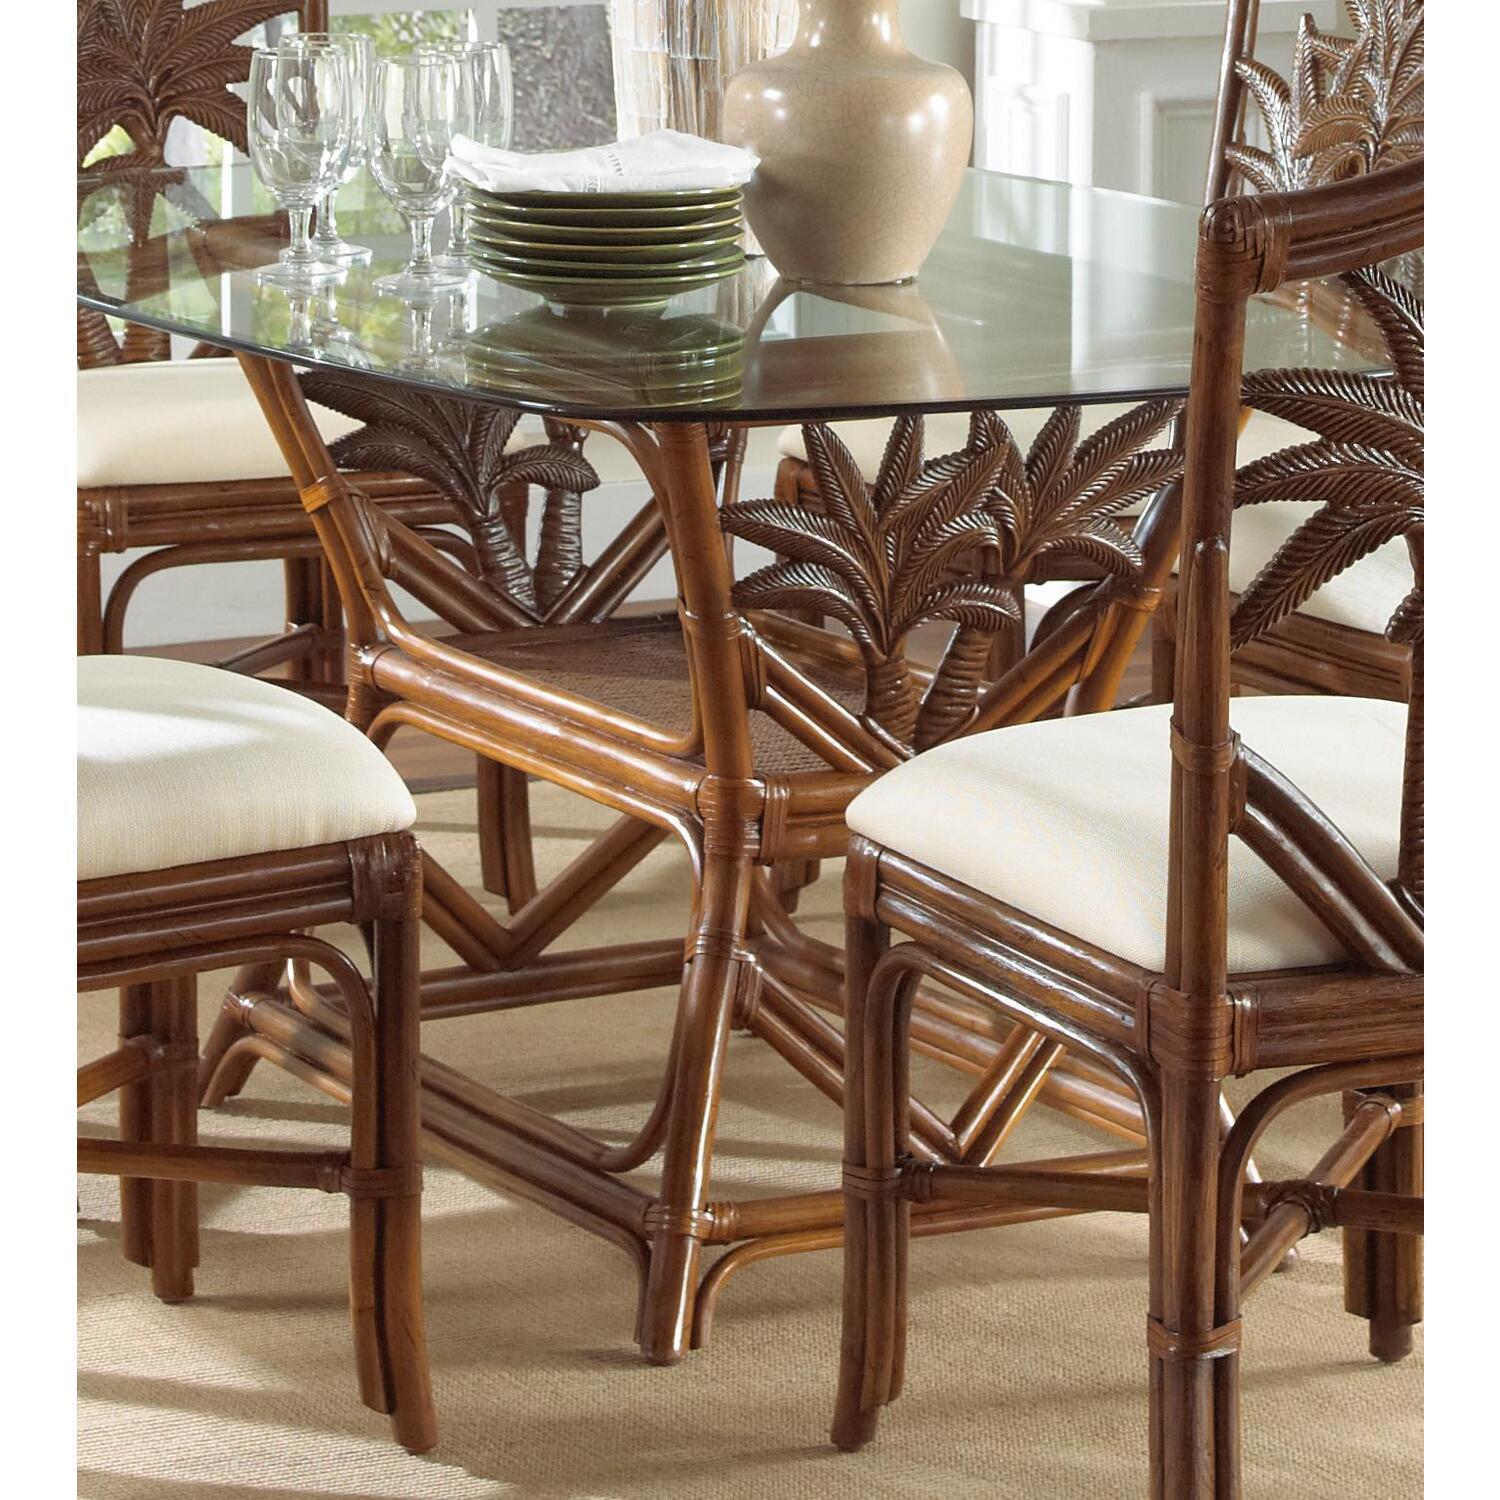 wicker chairs indoor dining old dental chair rattan and rectangular table 800 99